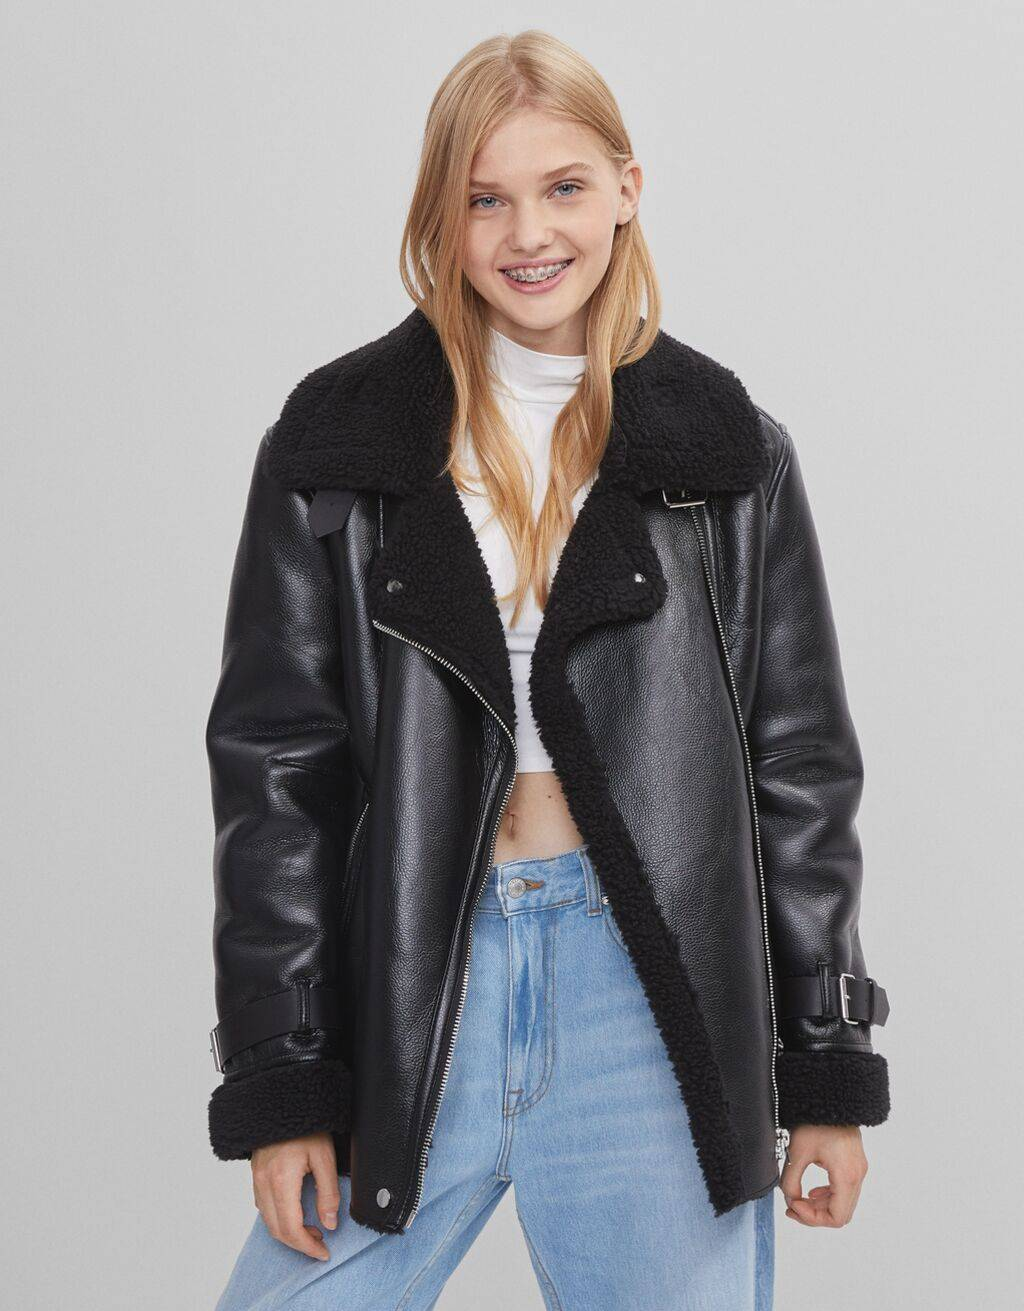 SALE 2021: Garments and accessories that hopefully have discounts